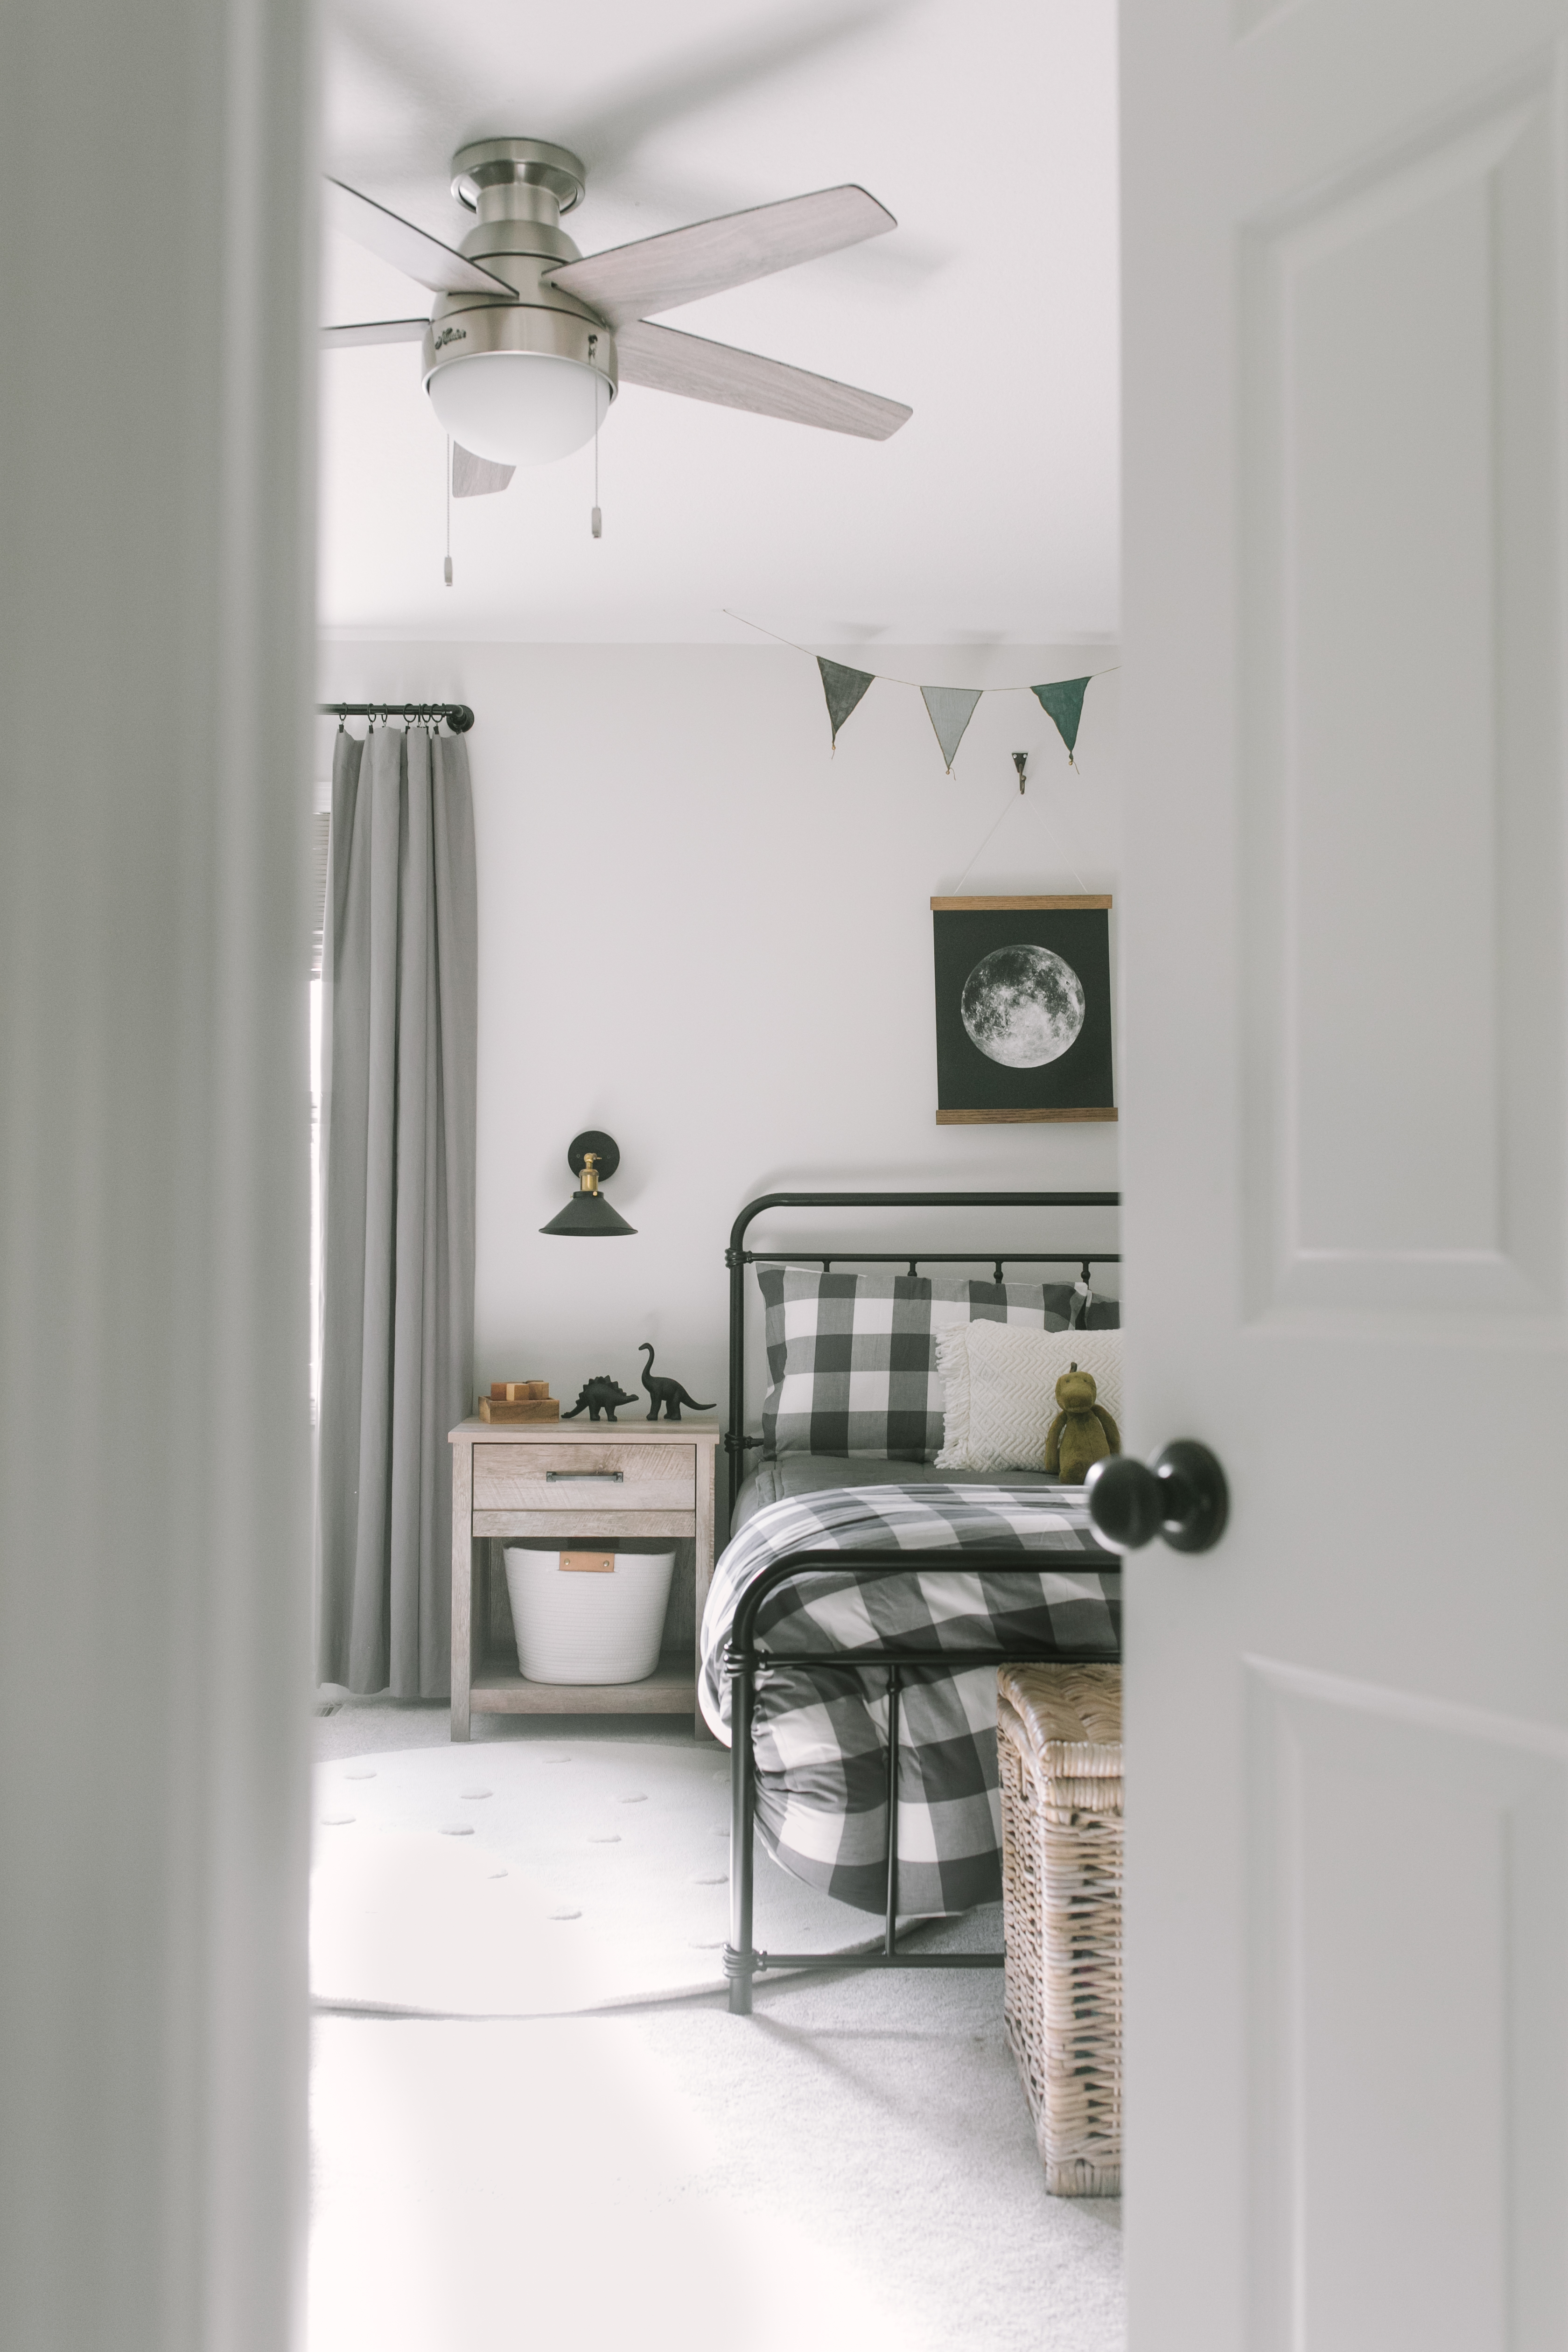 5 Tips For Transitioning Toddlers To Big Kid Beds Katie Lamb